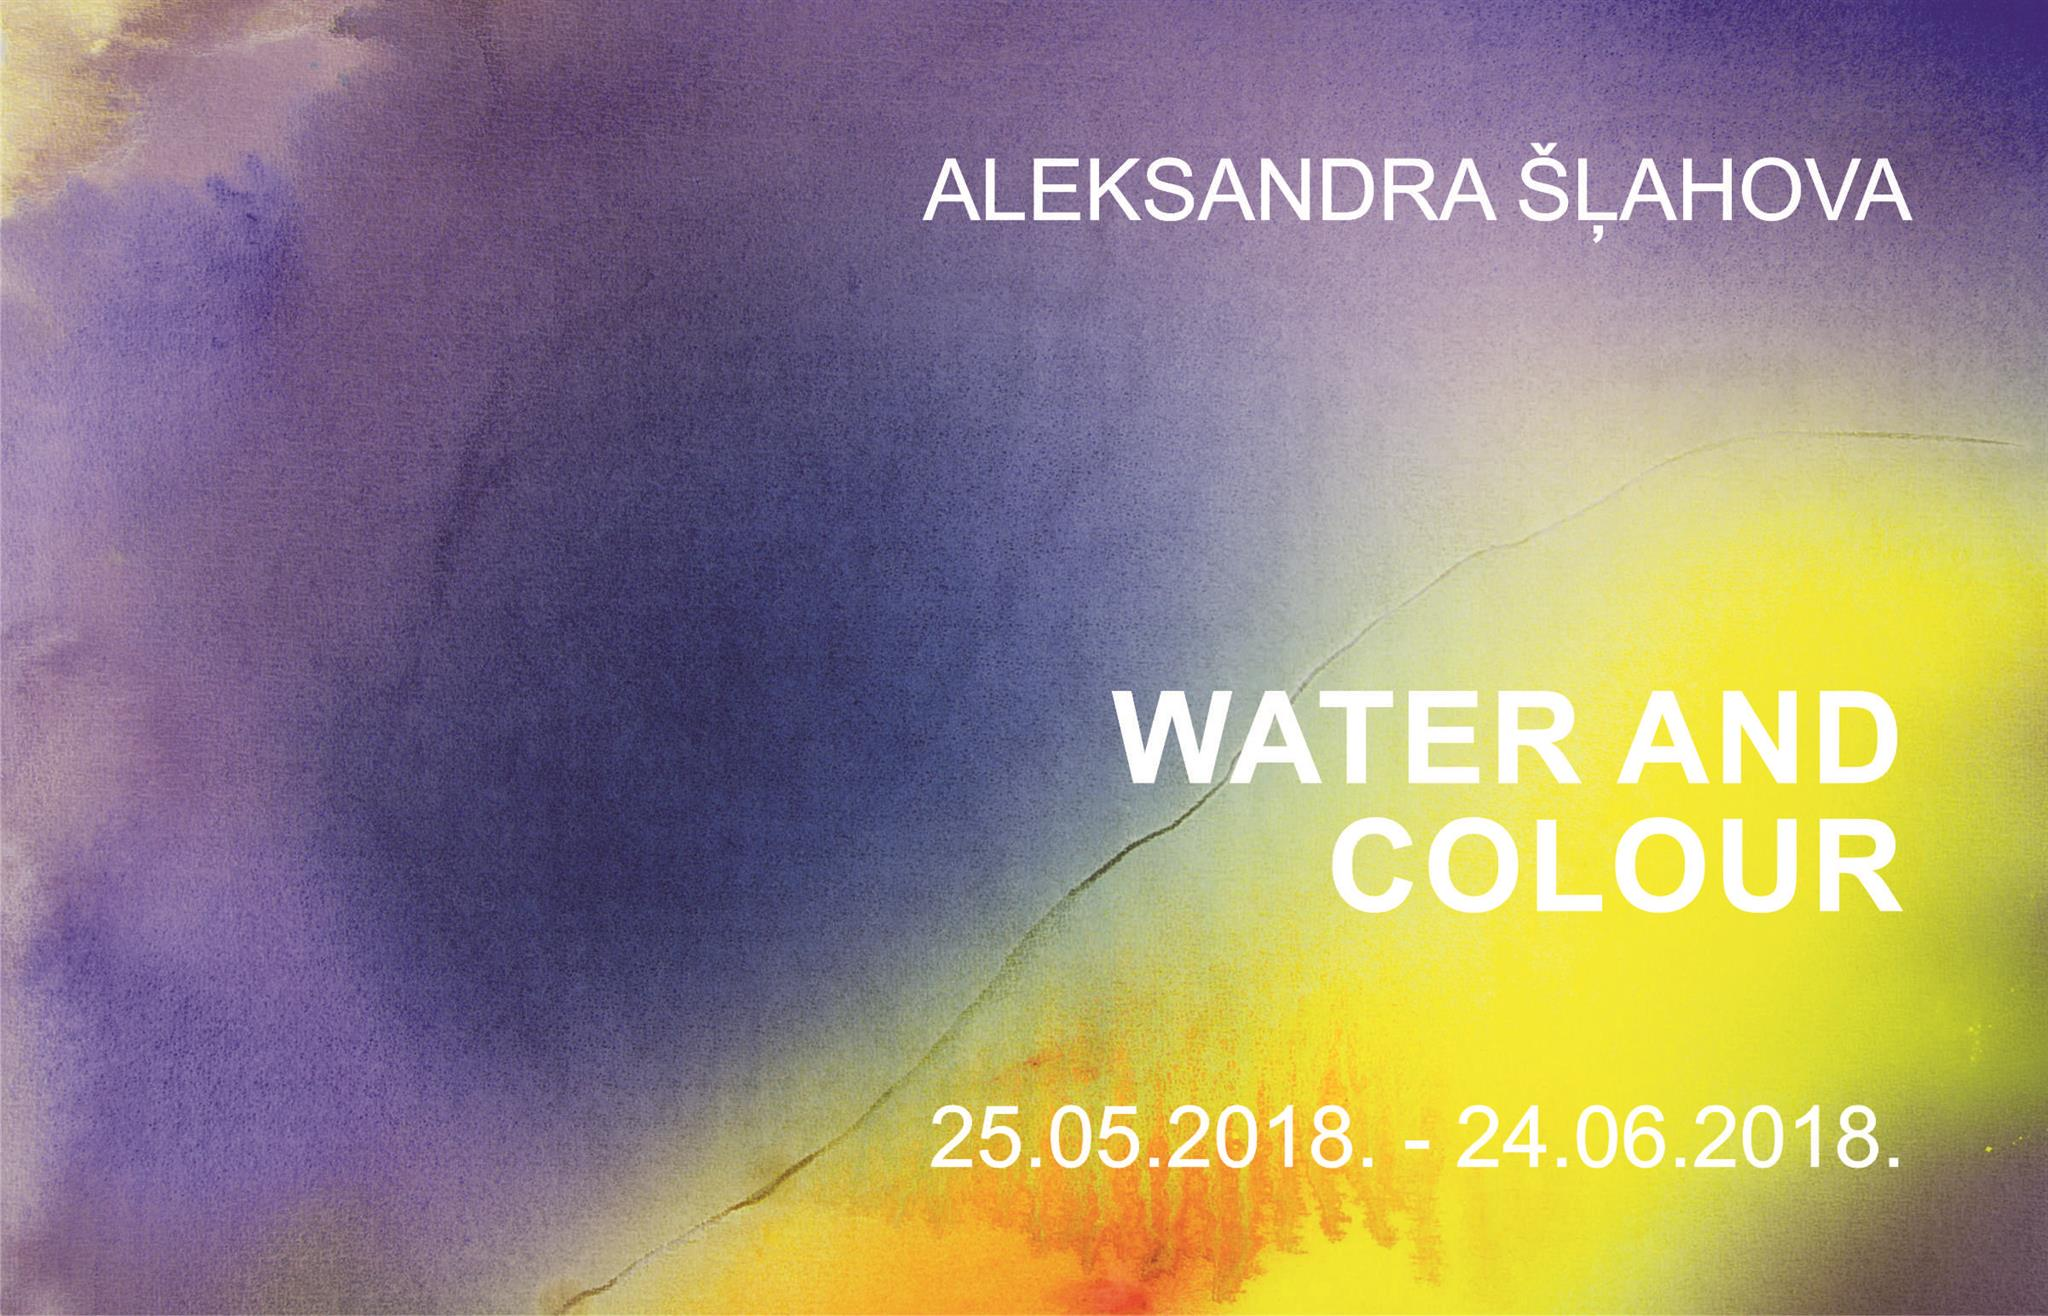 WATER AND COLOUR